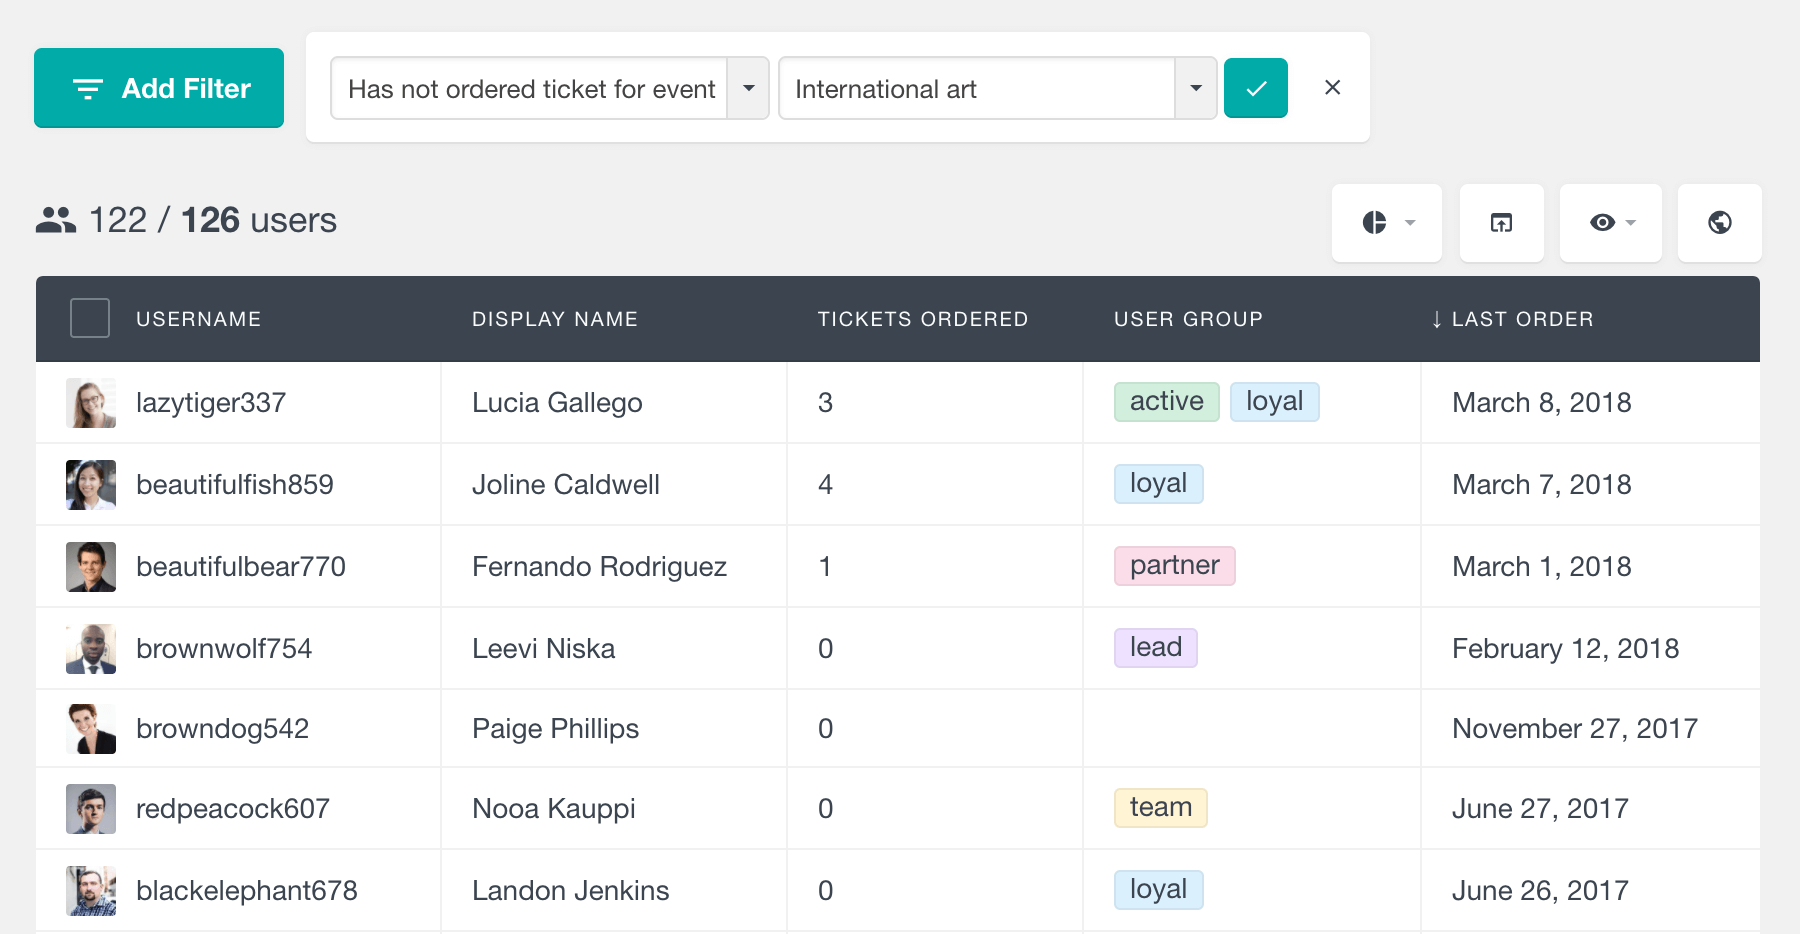 Event Tickets Plus - find users who have not ordered ticket for event